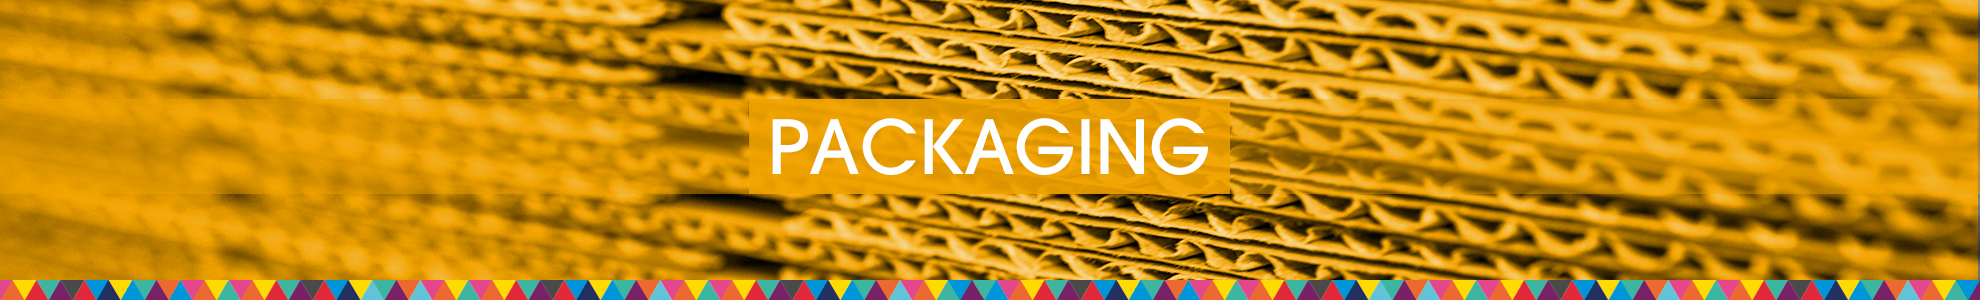 Packaging Supplies from KempCo